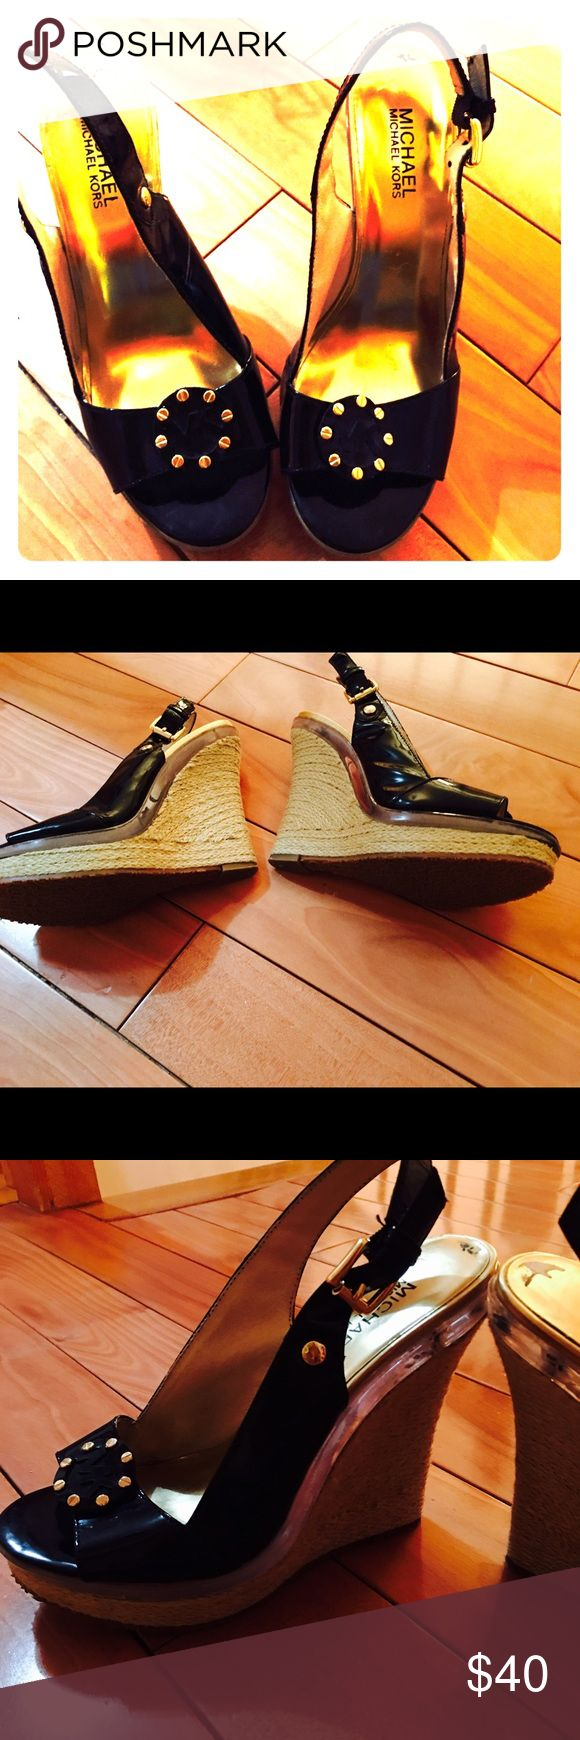 Michael Kors wedge shoes Beautiful black patten leather wedge shoes size 7m worn a few times very comfortable KORS Michael Kors Shoes Wedges